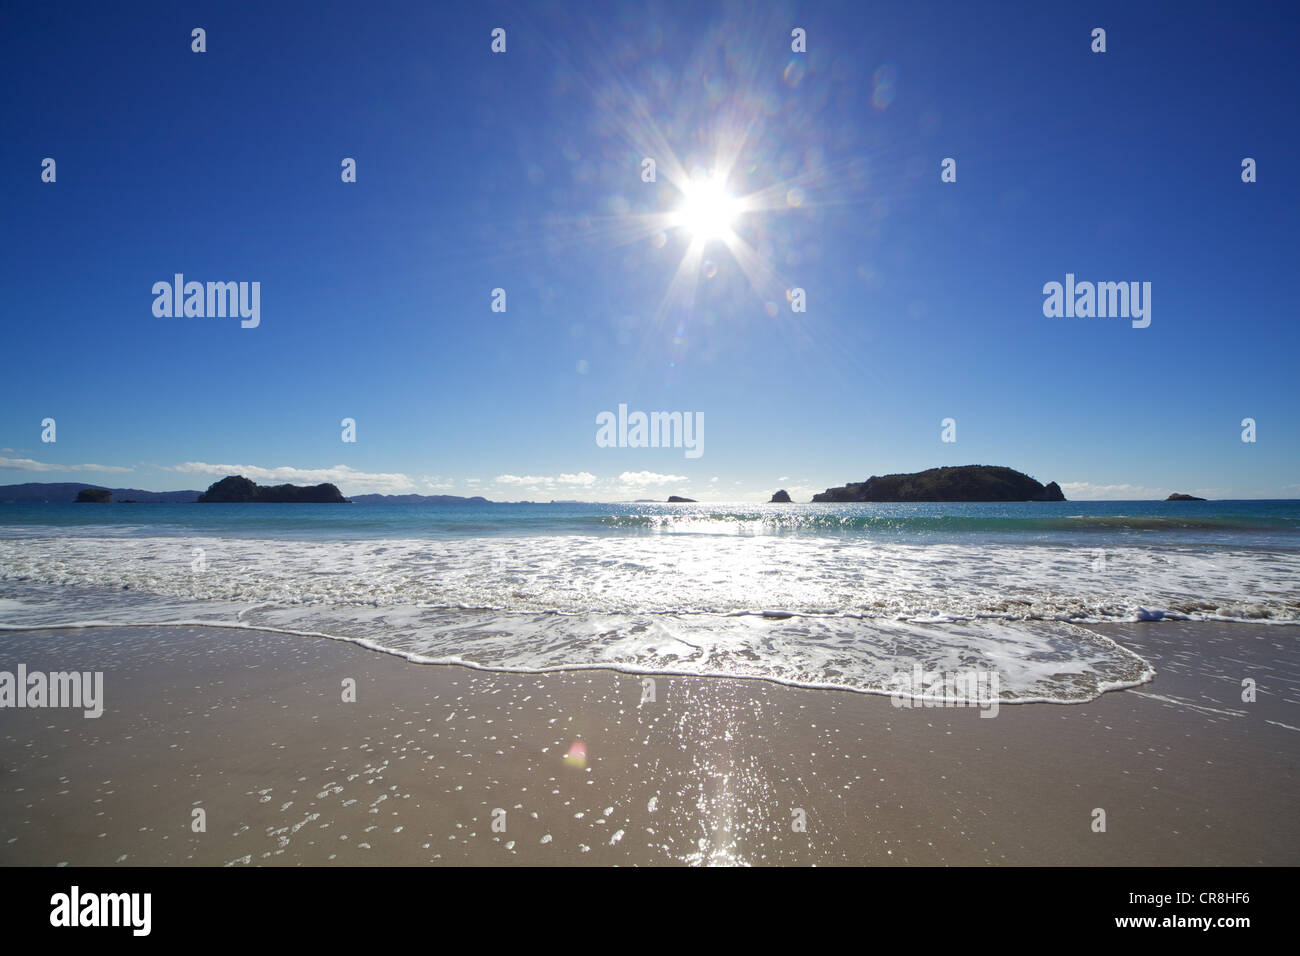 View out to sea in sunlight, Hahei, Waikato Region, New Zealand - Stock Image